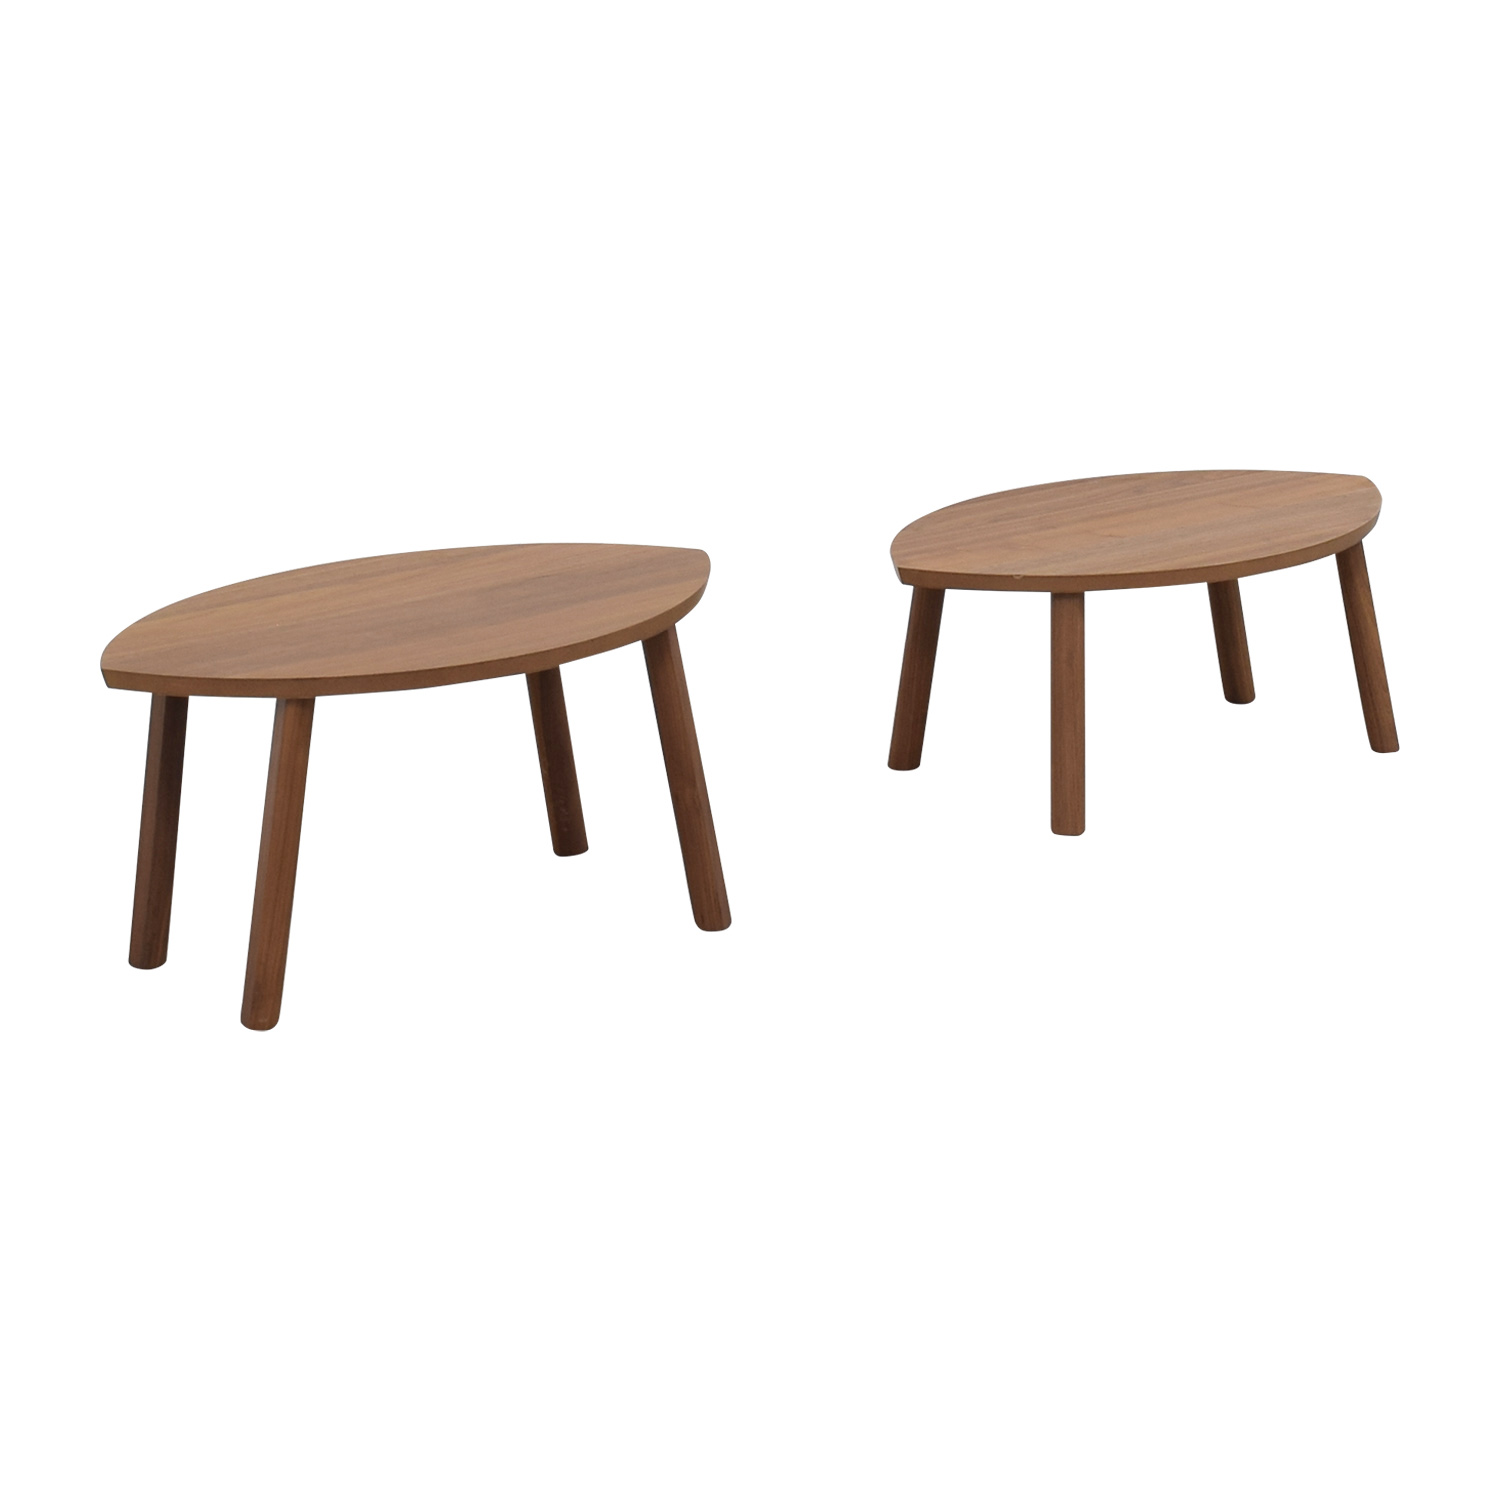 IKEA IKEA Stockholm Oval Nesting Wood End Tables used